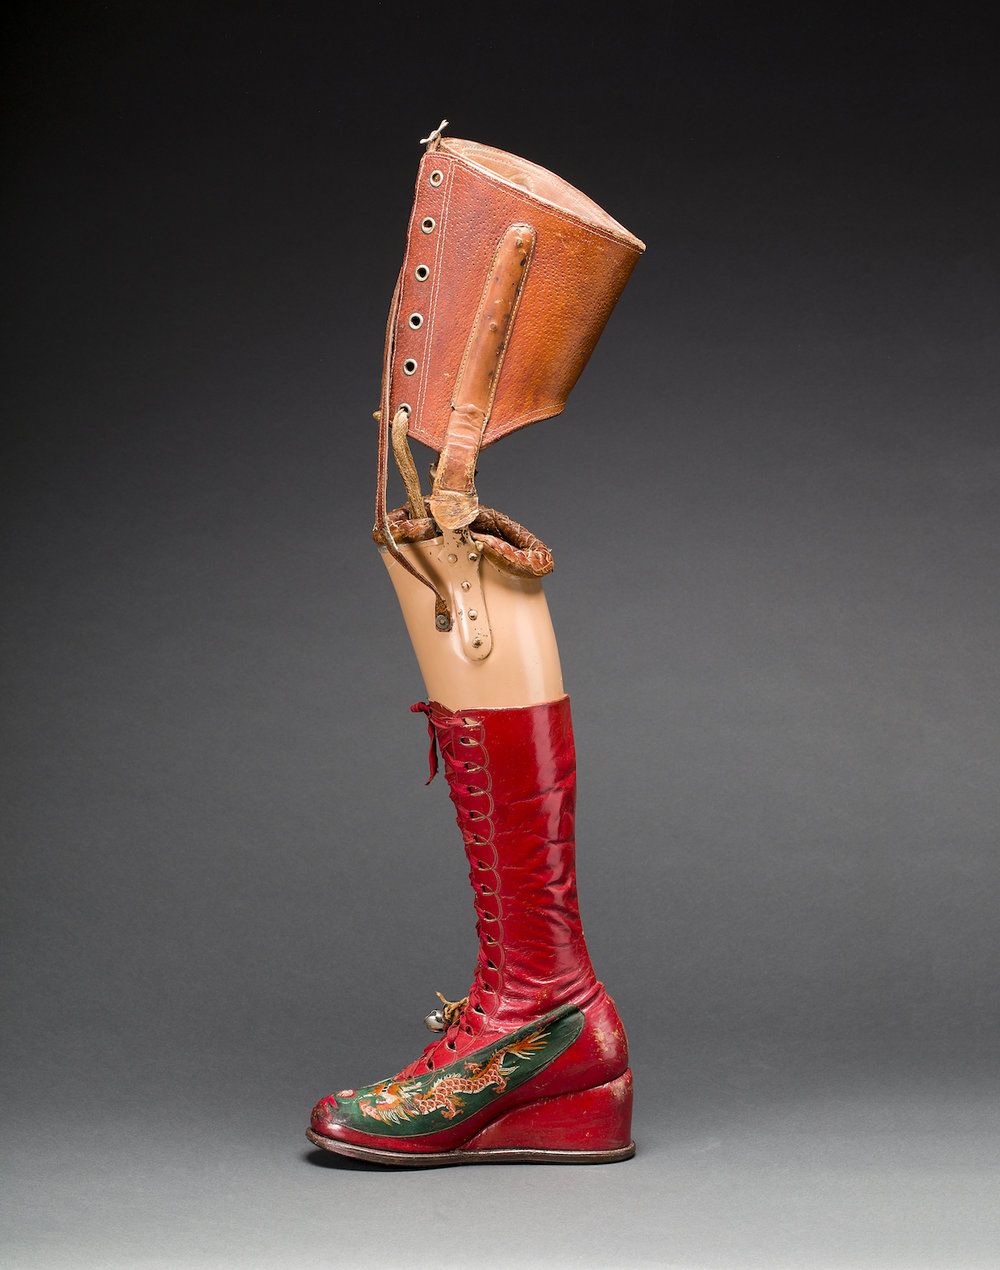 Prosthetic leg with leather boot. Appliquéd silk with embroidered Chinese motifs. Photograph Javier Hinojosa. Museo Frida Kahlo. © Diego Riviera and Frida Kahlo Archives, Banco de México, Fiduciary of the Trust of the Diego Riviera and Frida Kahlo Museums.